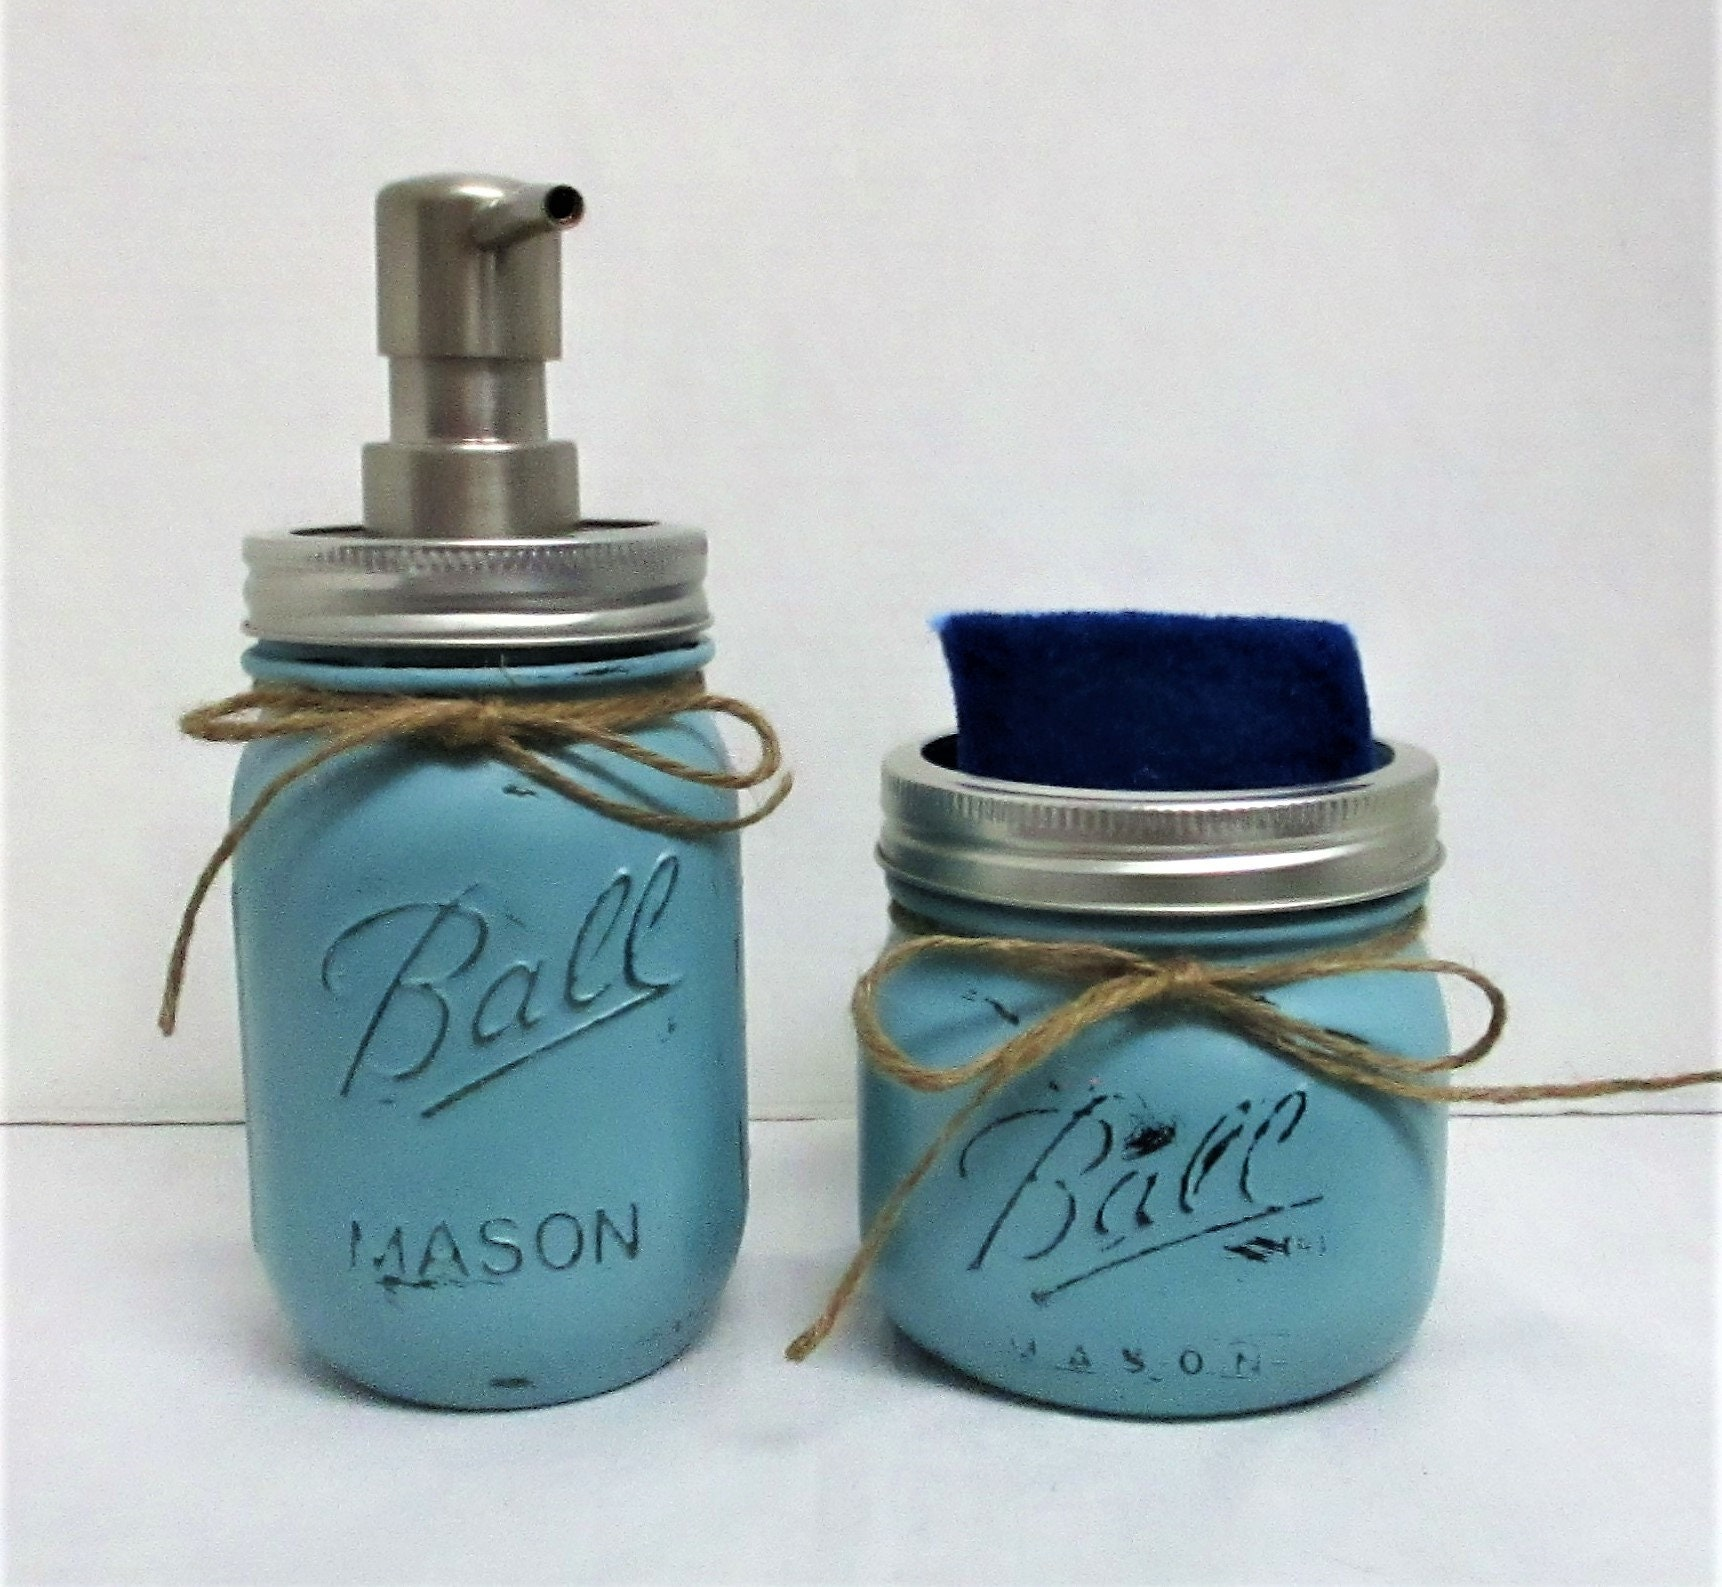 Mason Jar Kitchen Set / Soap Dispenser / Sponge Holder / Rustic ...